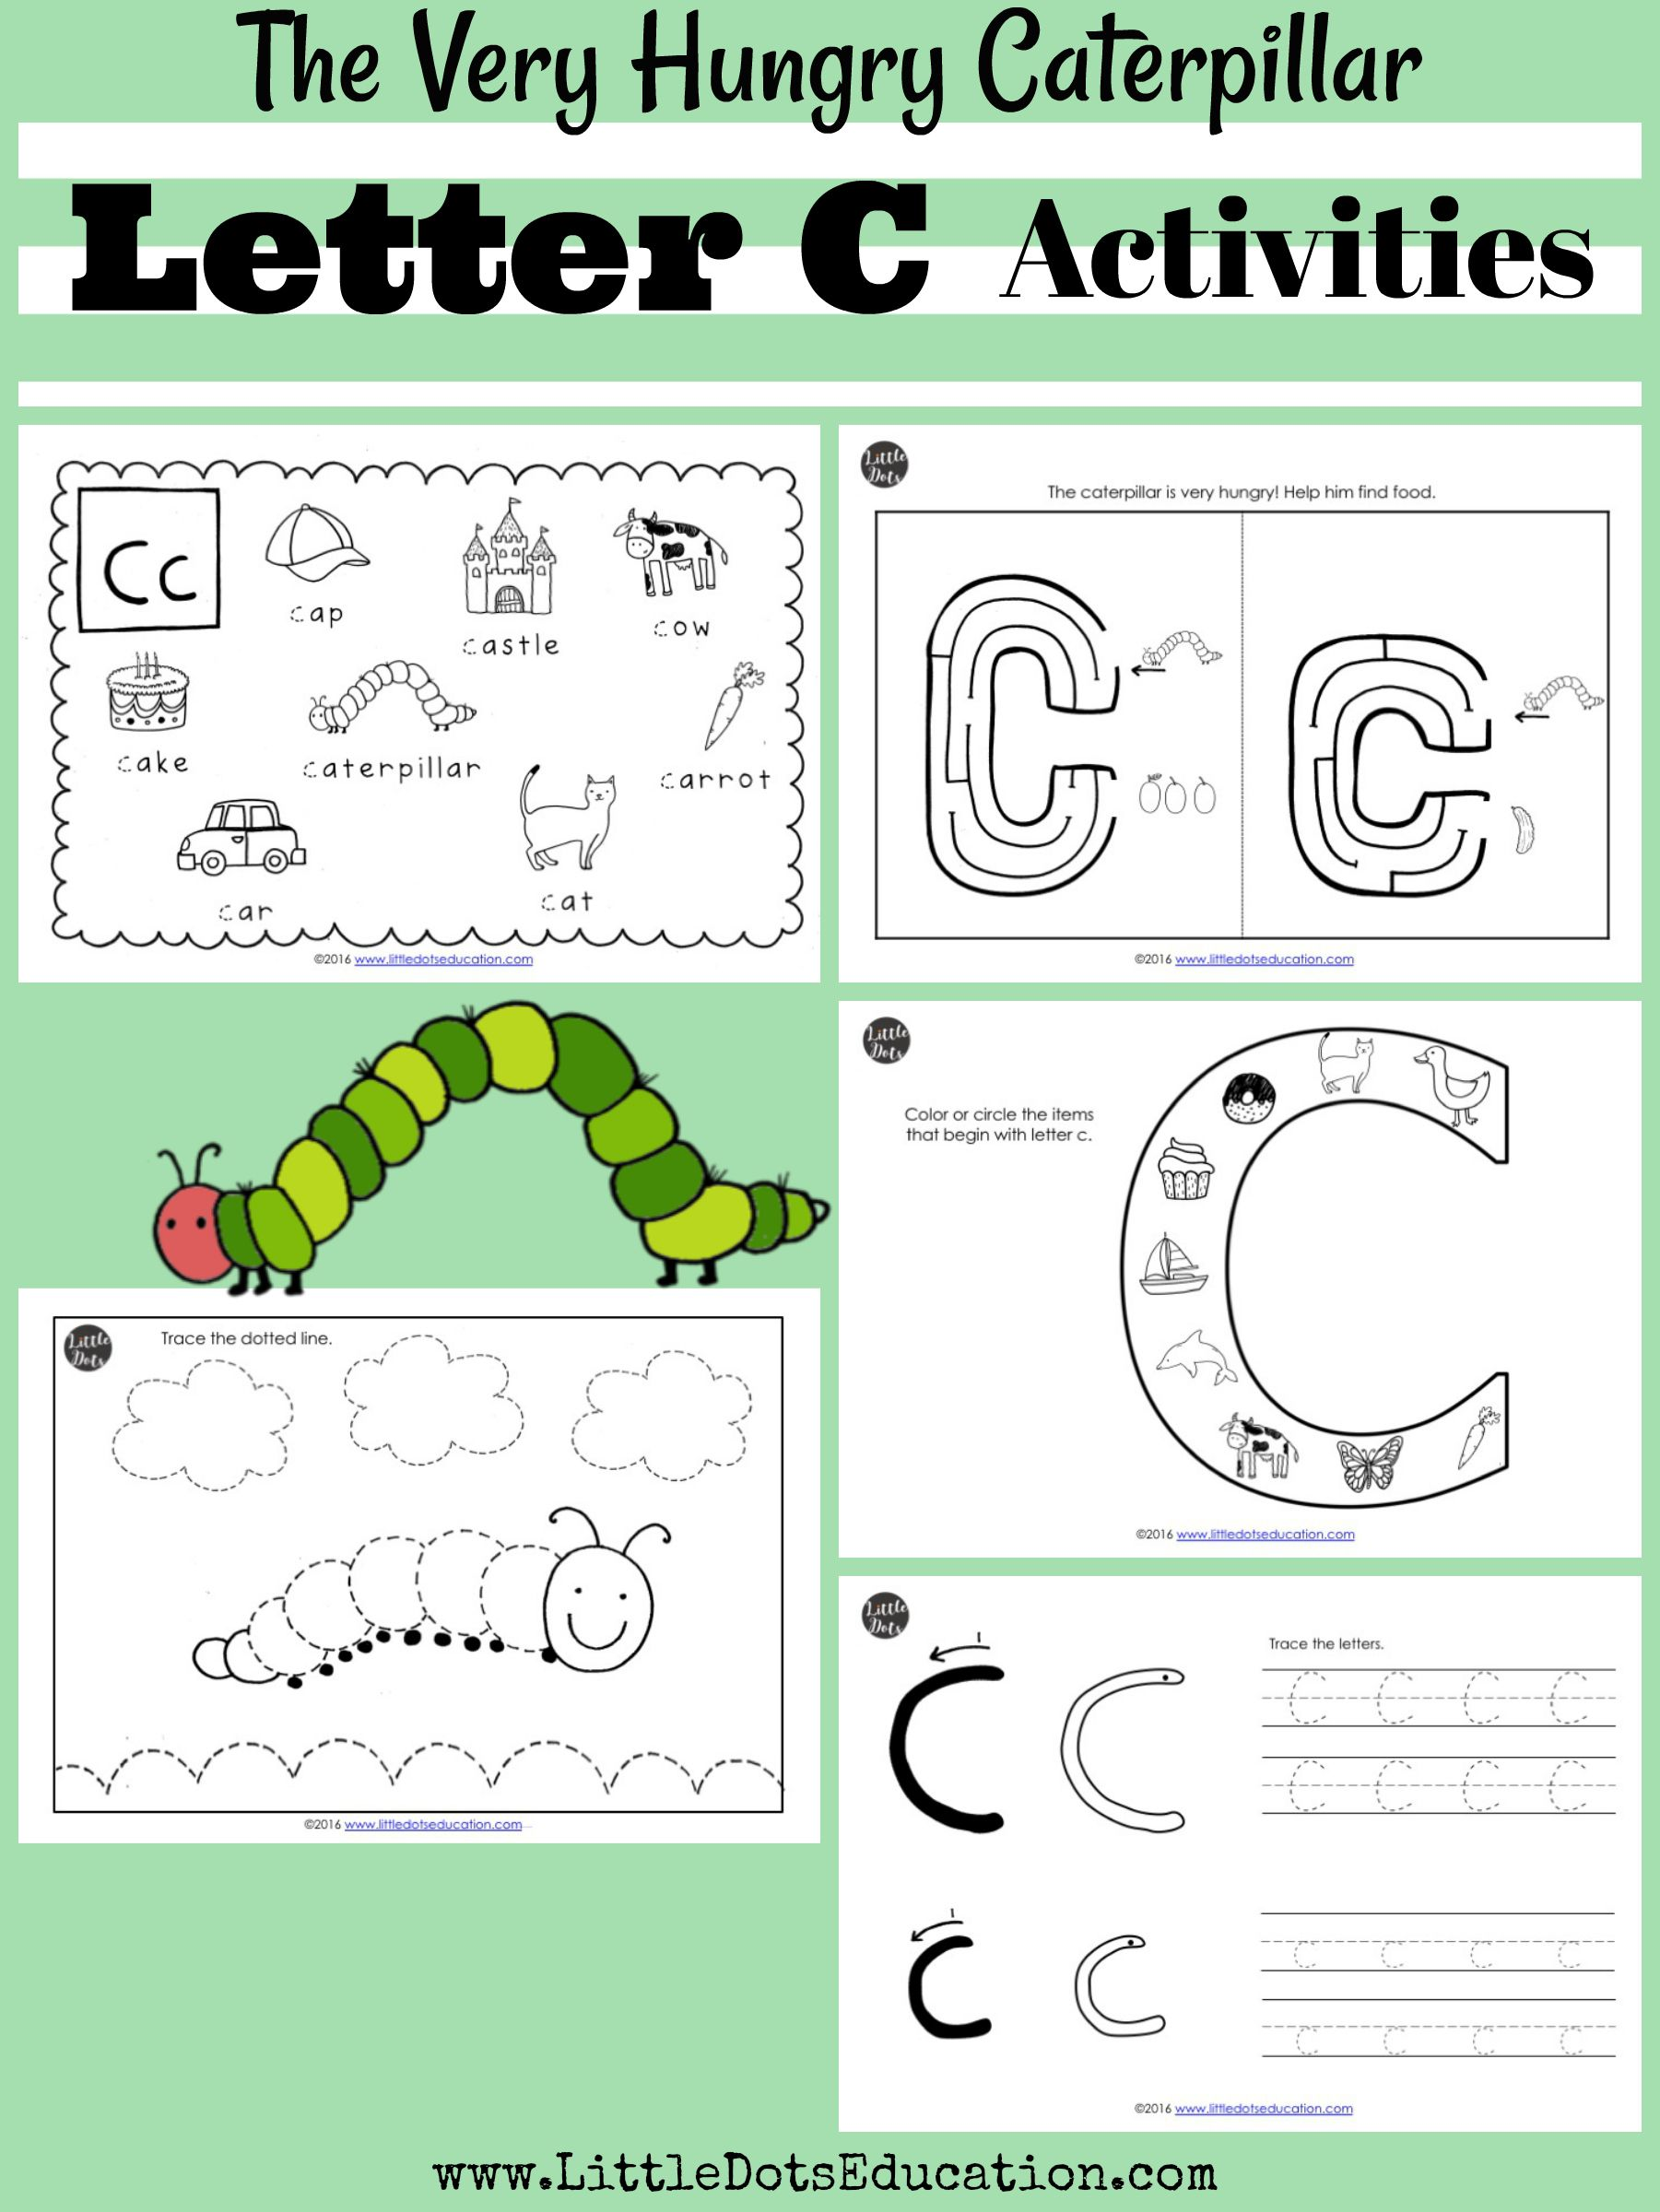 Download Letter C Activities And Worksheets For Preschool Pre K Or Kindergarten Level Based On